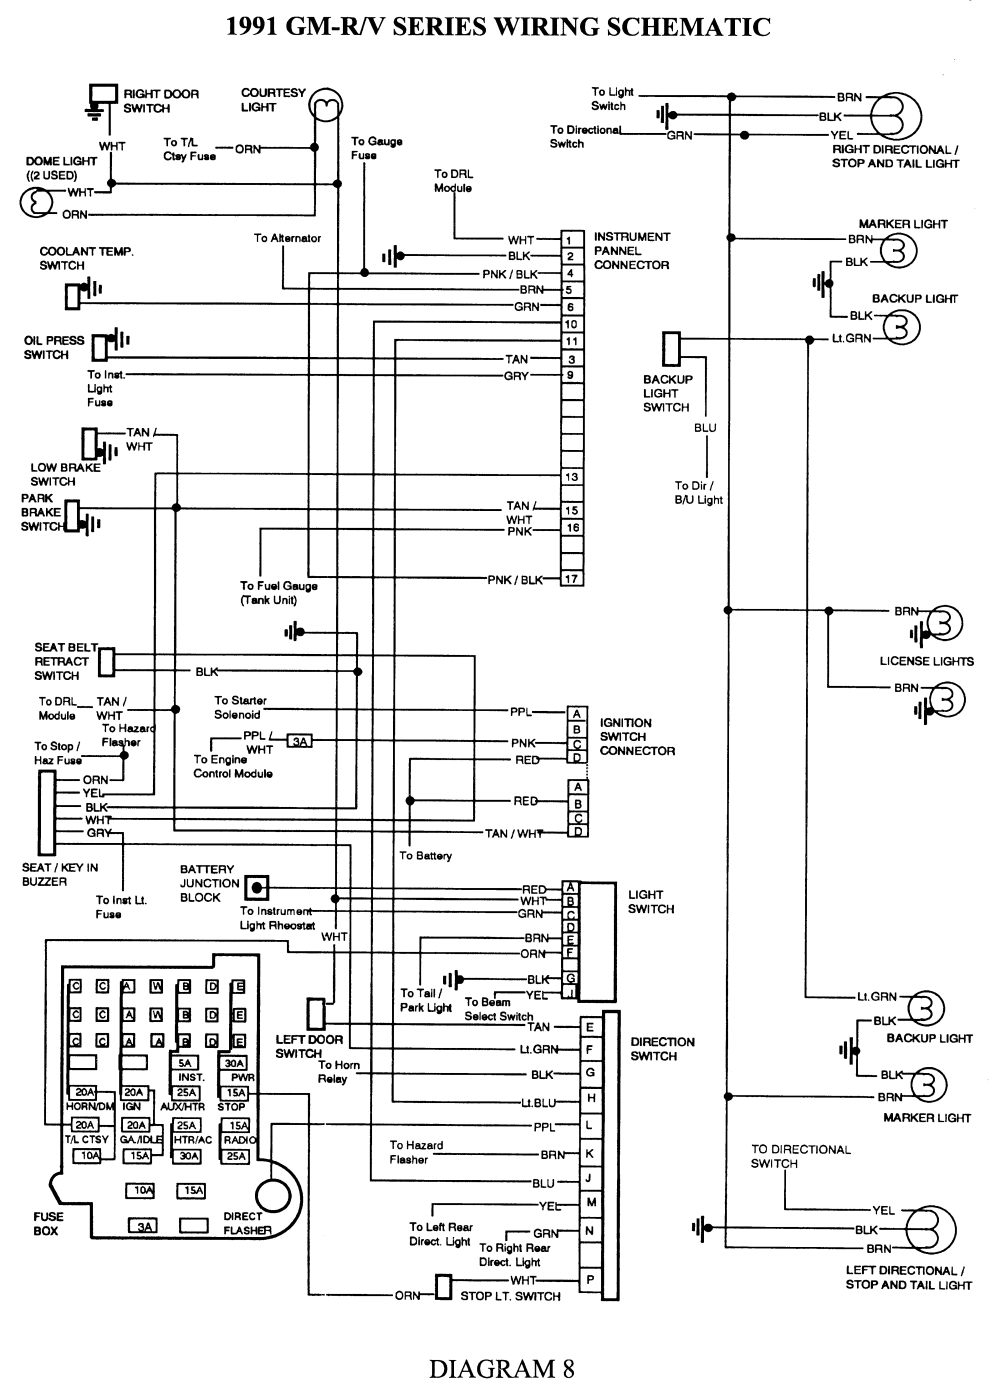 2001 chevrolet suburban wiring diagrams